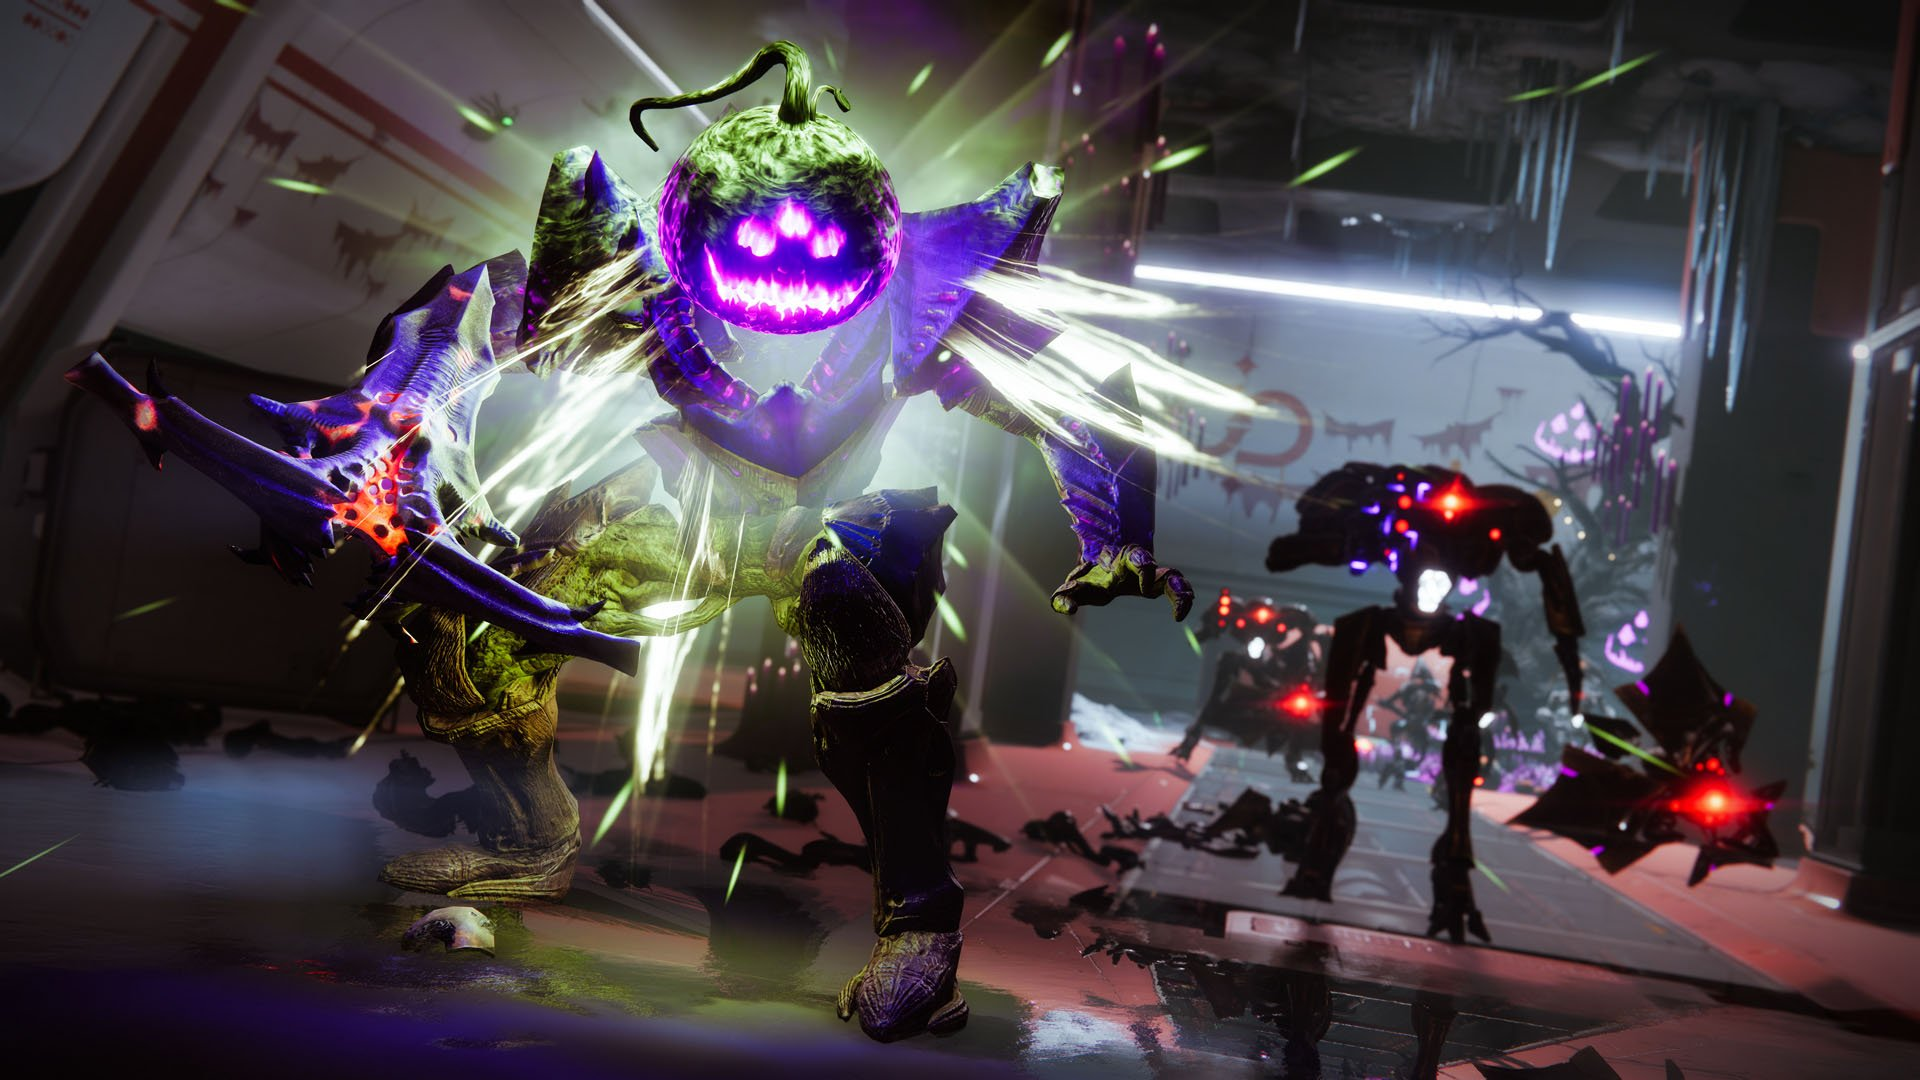 Headless Ones and Vex in the Haunted Lost Sectors of Destiny 2